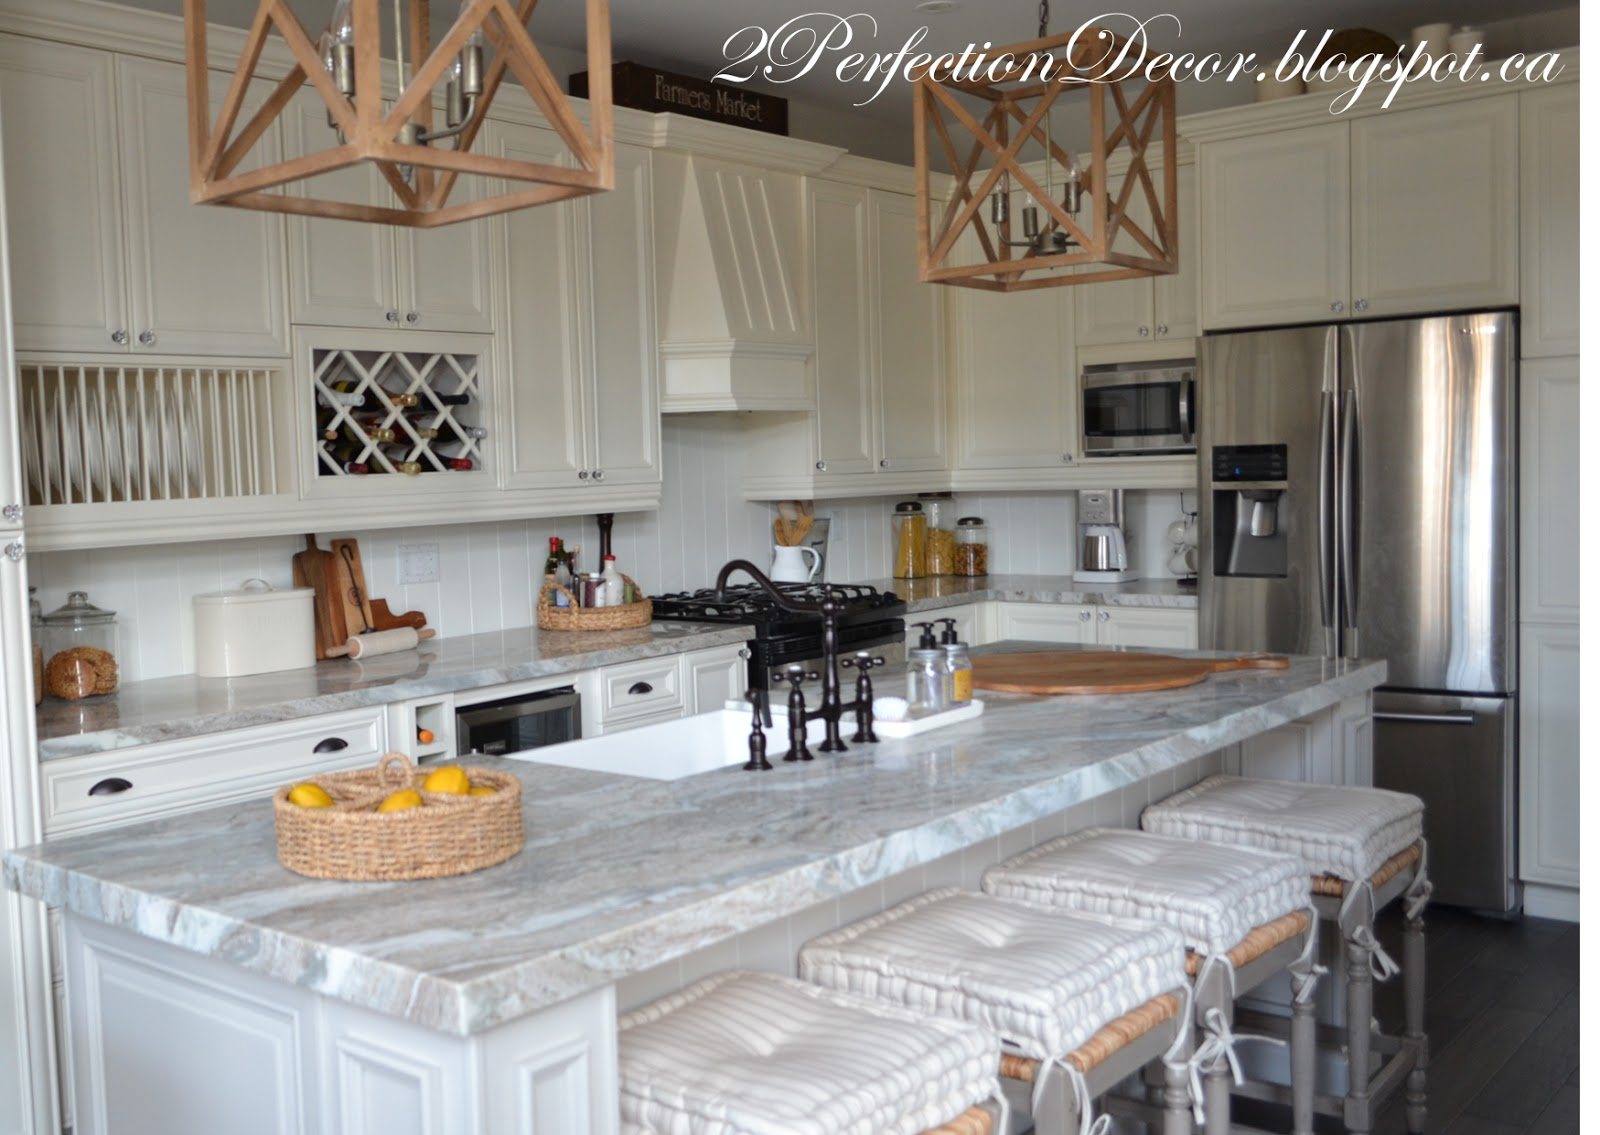 2perfection Decor Farmhouse Kitchen Reveal